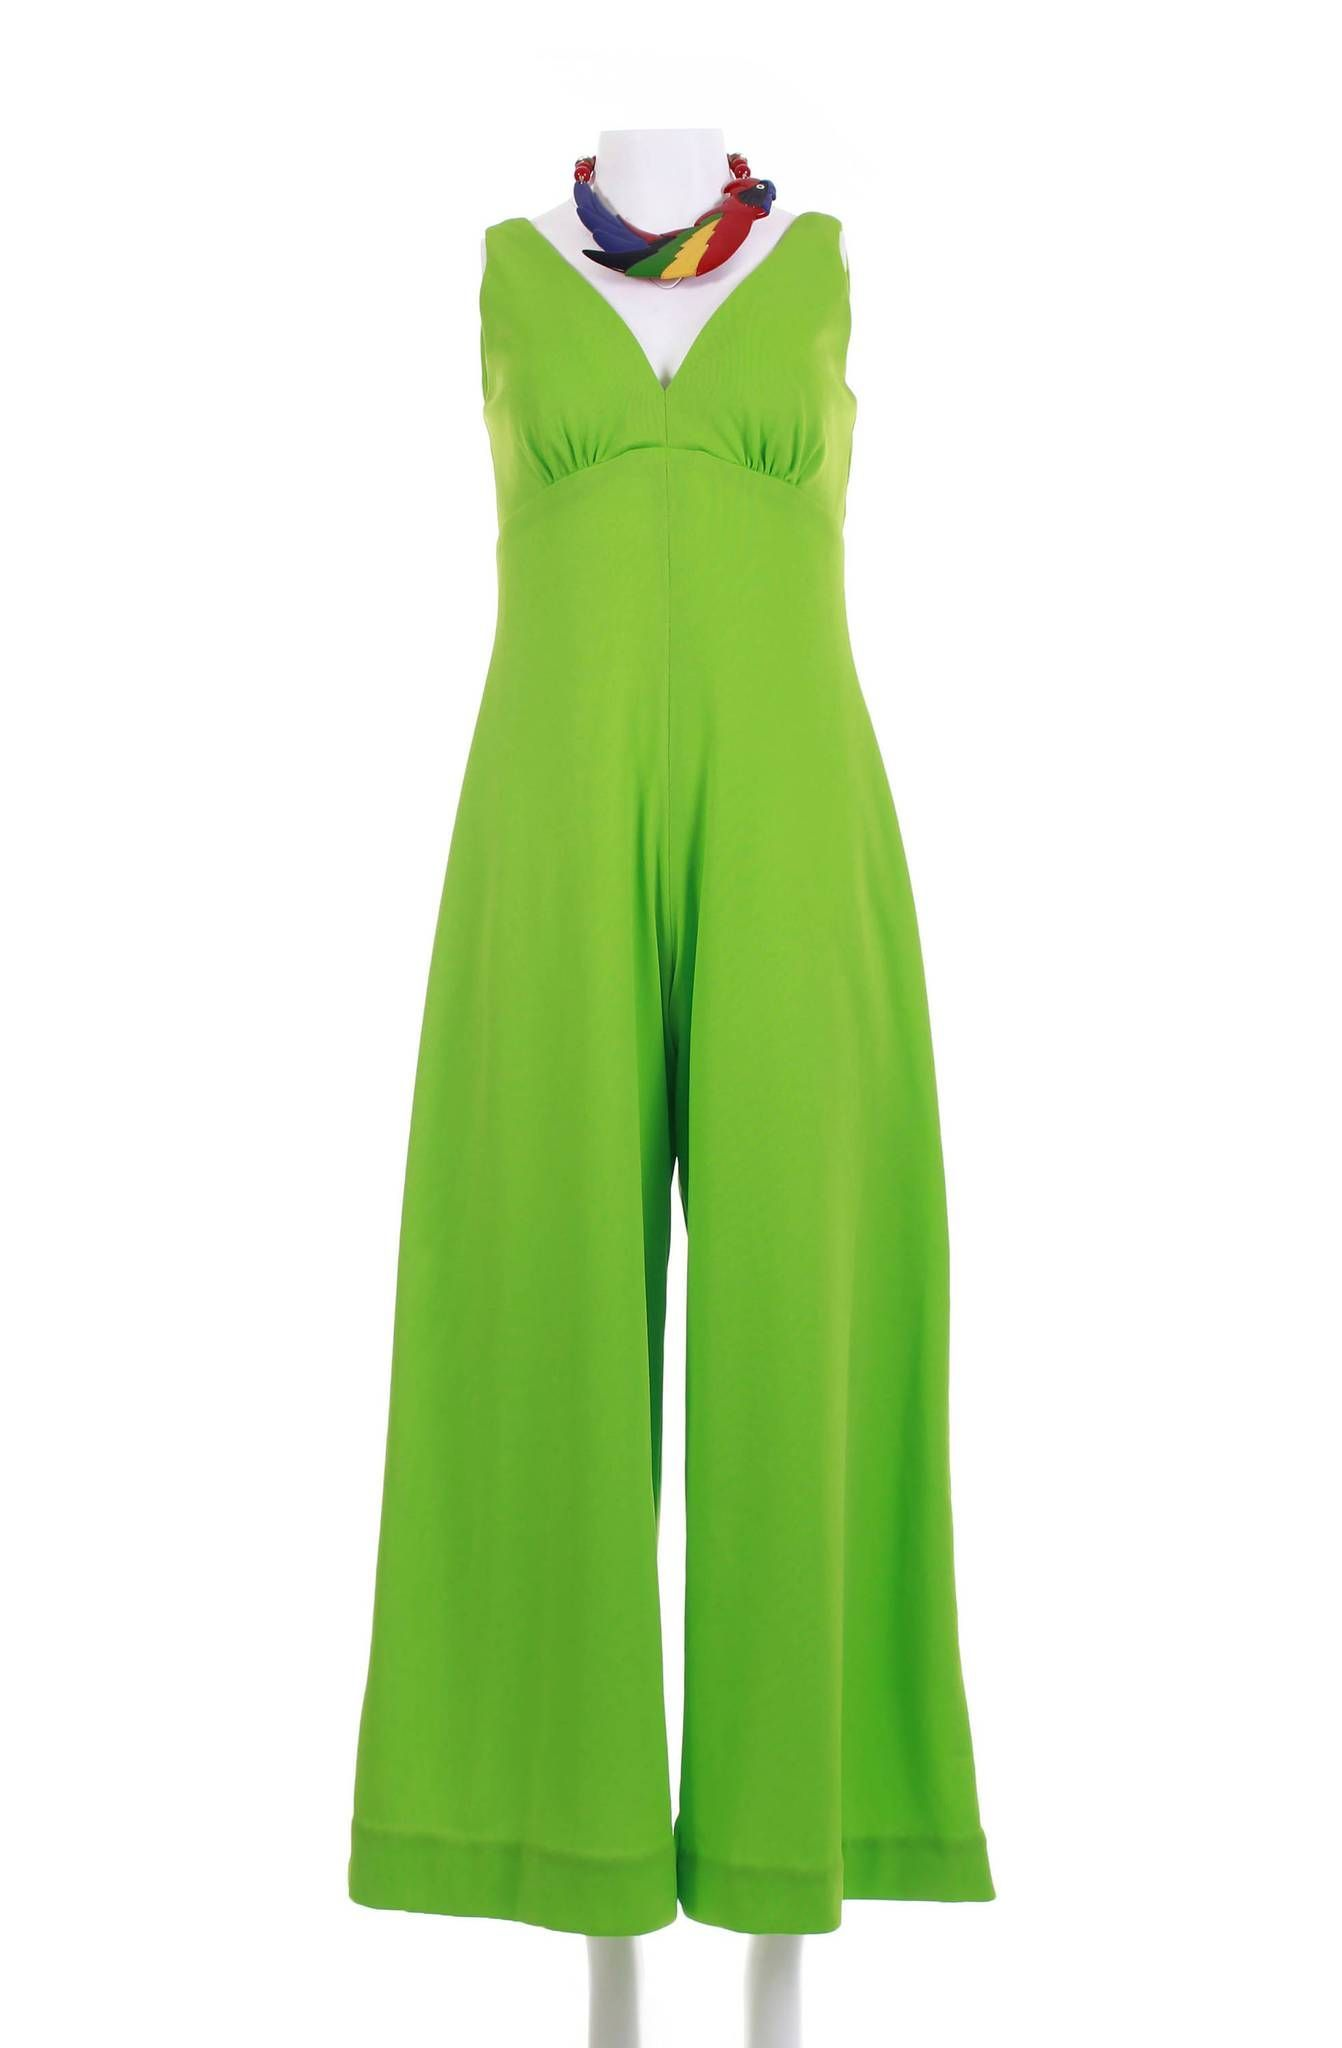 3cf24095c6b2 70s Disco Jumpsuit Palazzo Pants Bell Bottom Jumpsuit 70s Clothing Wide Leg  Pants Lime Green Vintage Clothing Women s Size SMALL 34